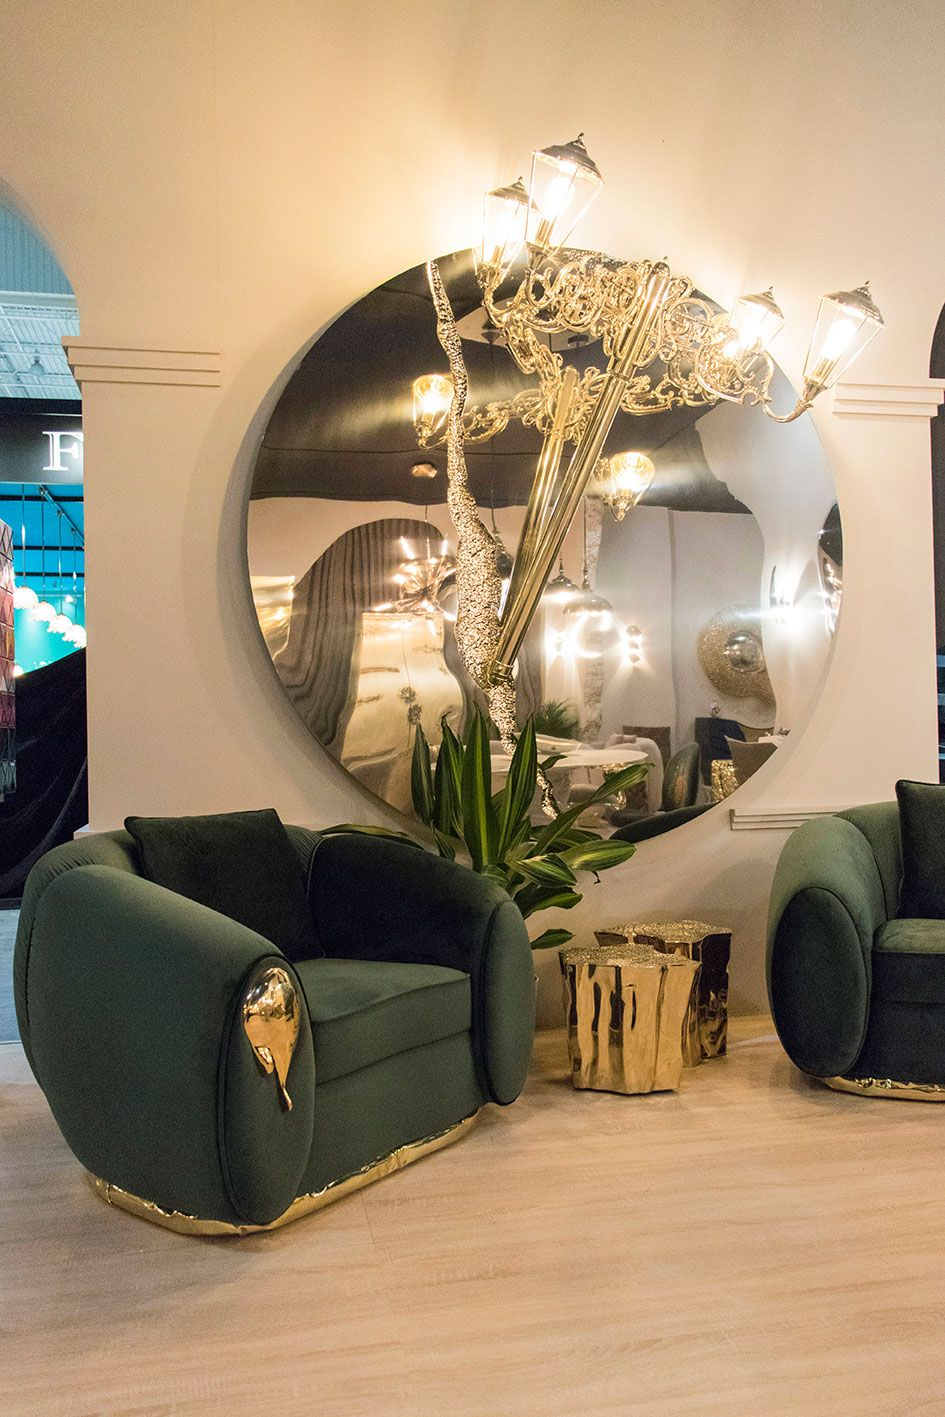 Monsyeur Is In Paris To Show You What Is Happening At One Of The Biggest Design Fairs In The World Maison Et Objet Decoration Maison Mobilier De Luxe